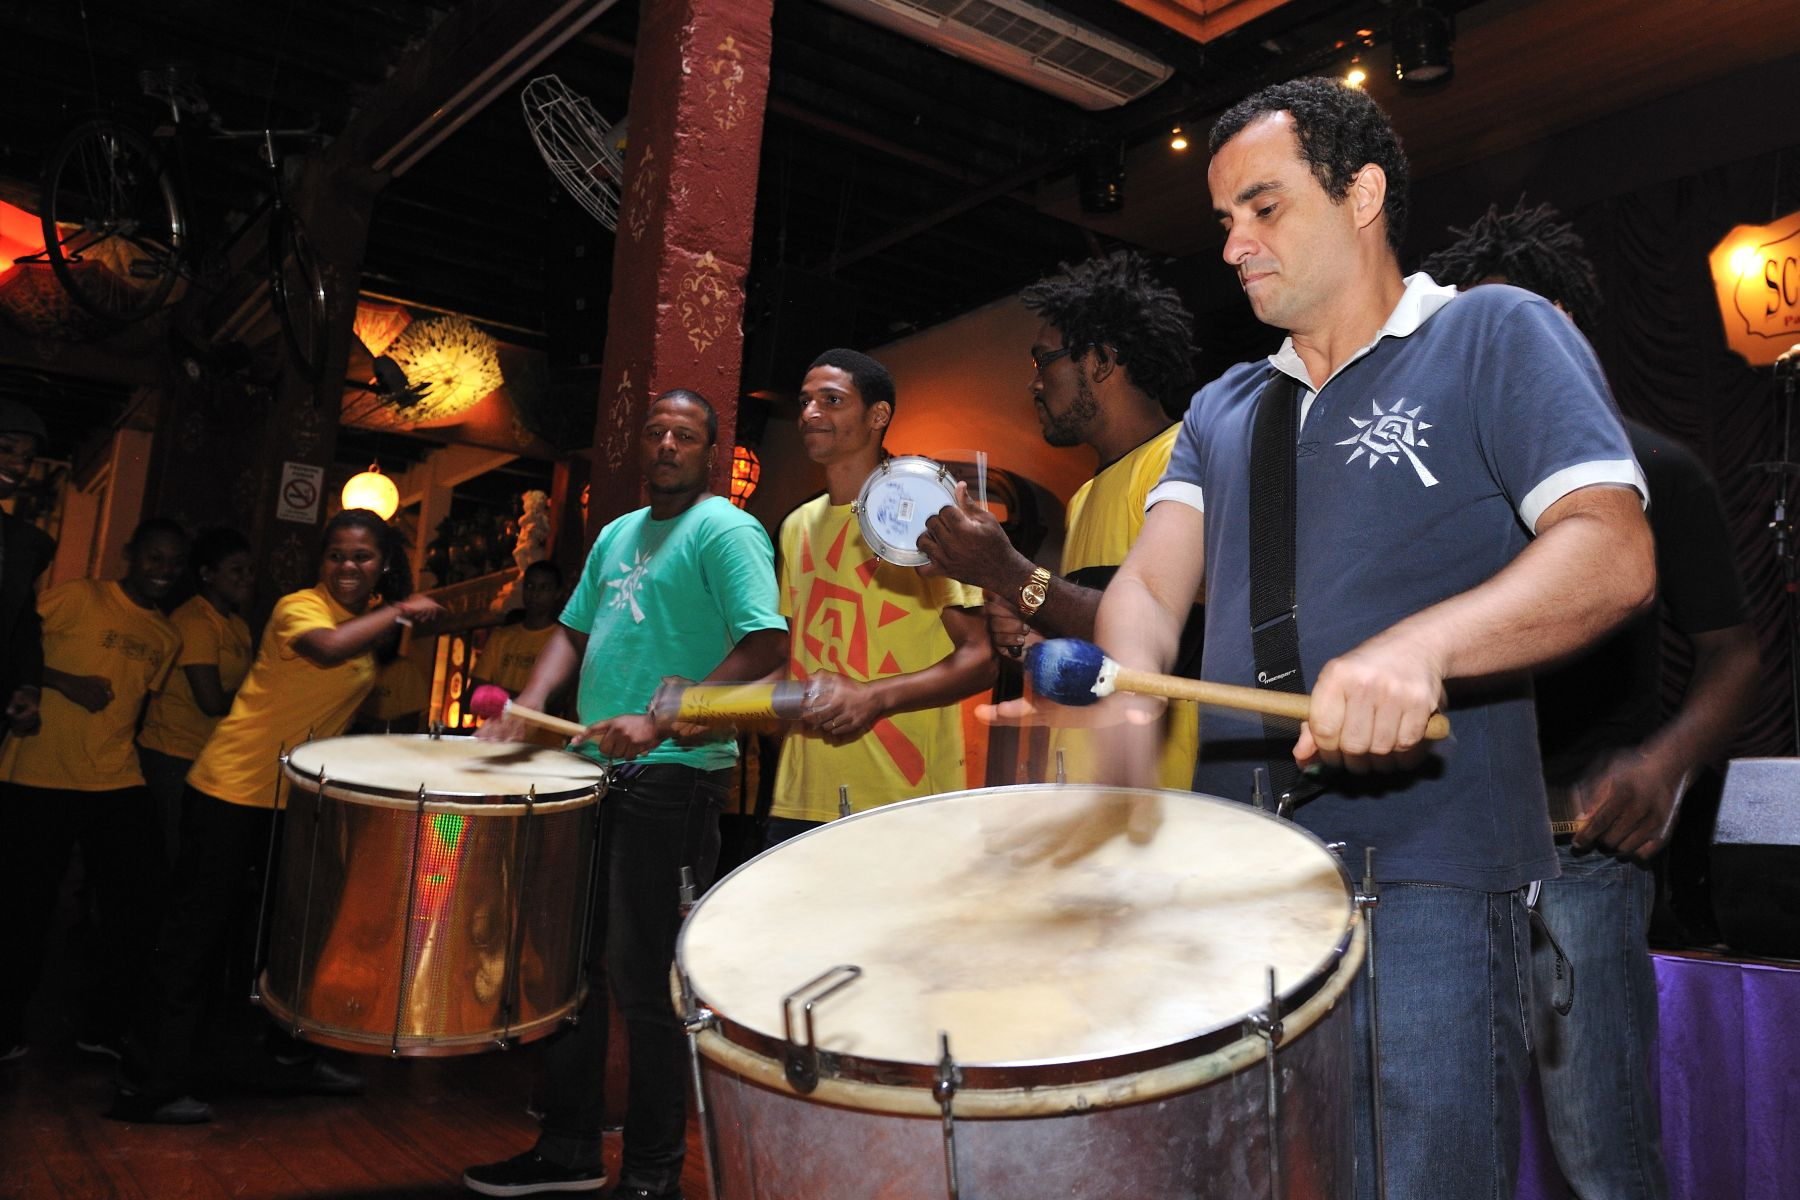 They performed samba music demonstrations and discussed Brazilian rhythms and the different instruments that are played in a samba school and in bloco de carnaval (carnival street band).